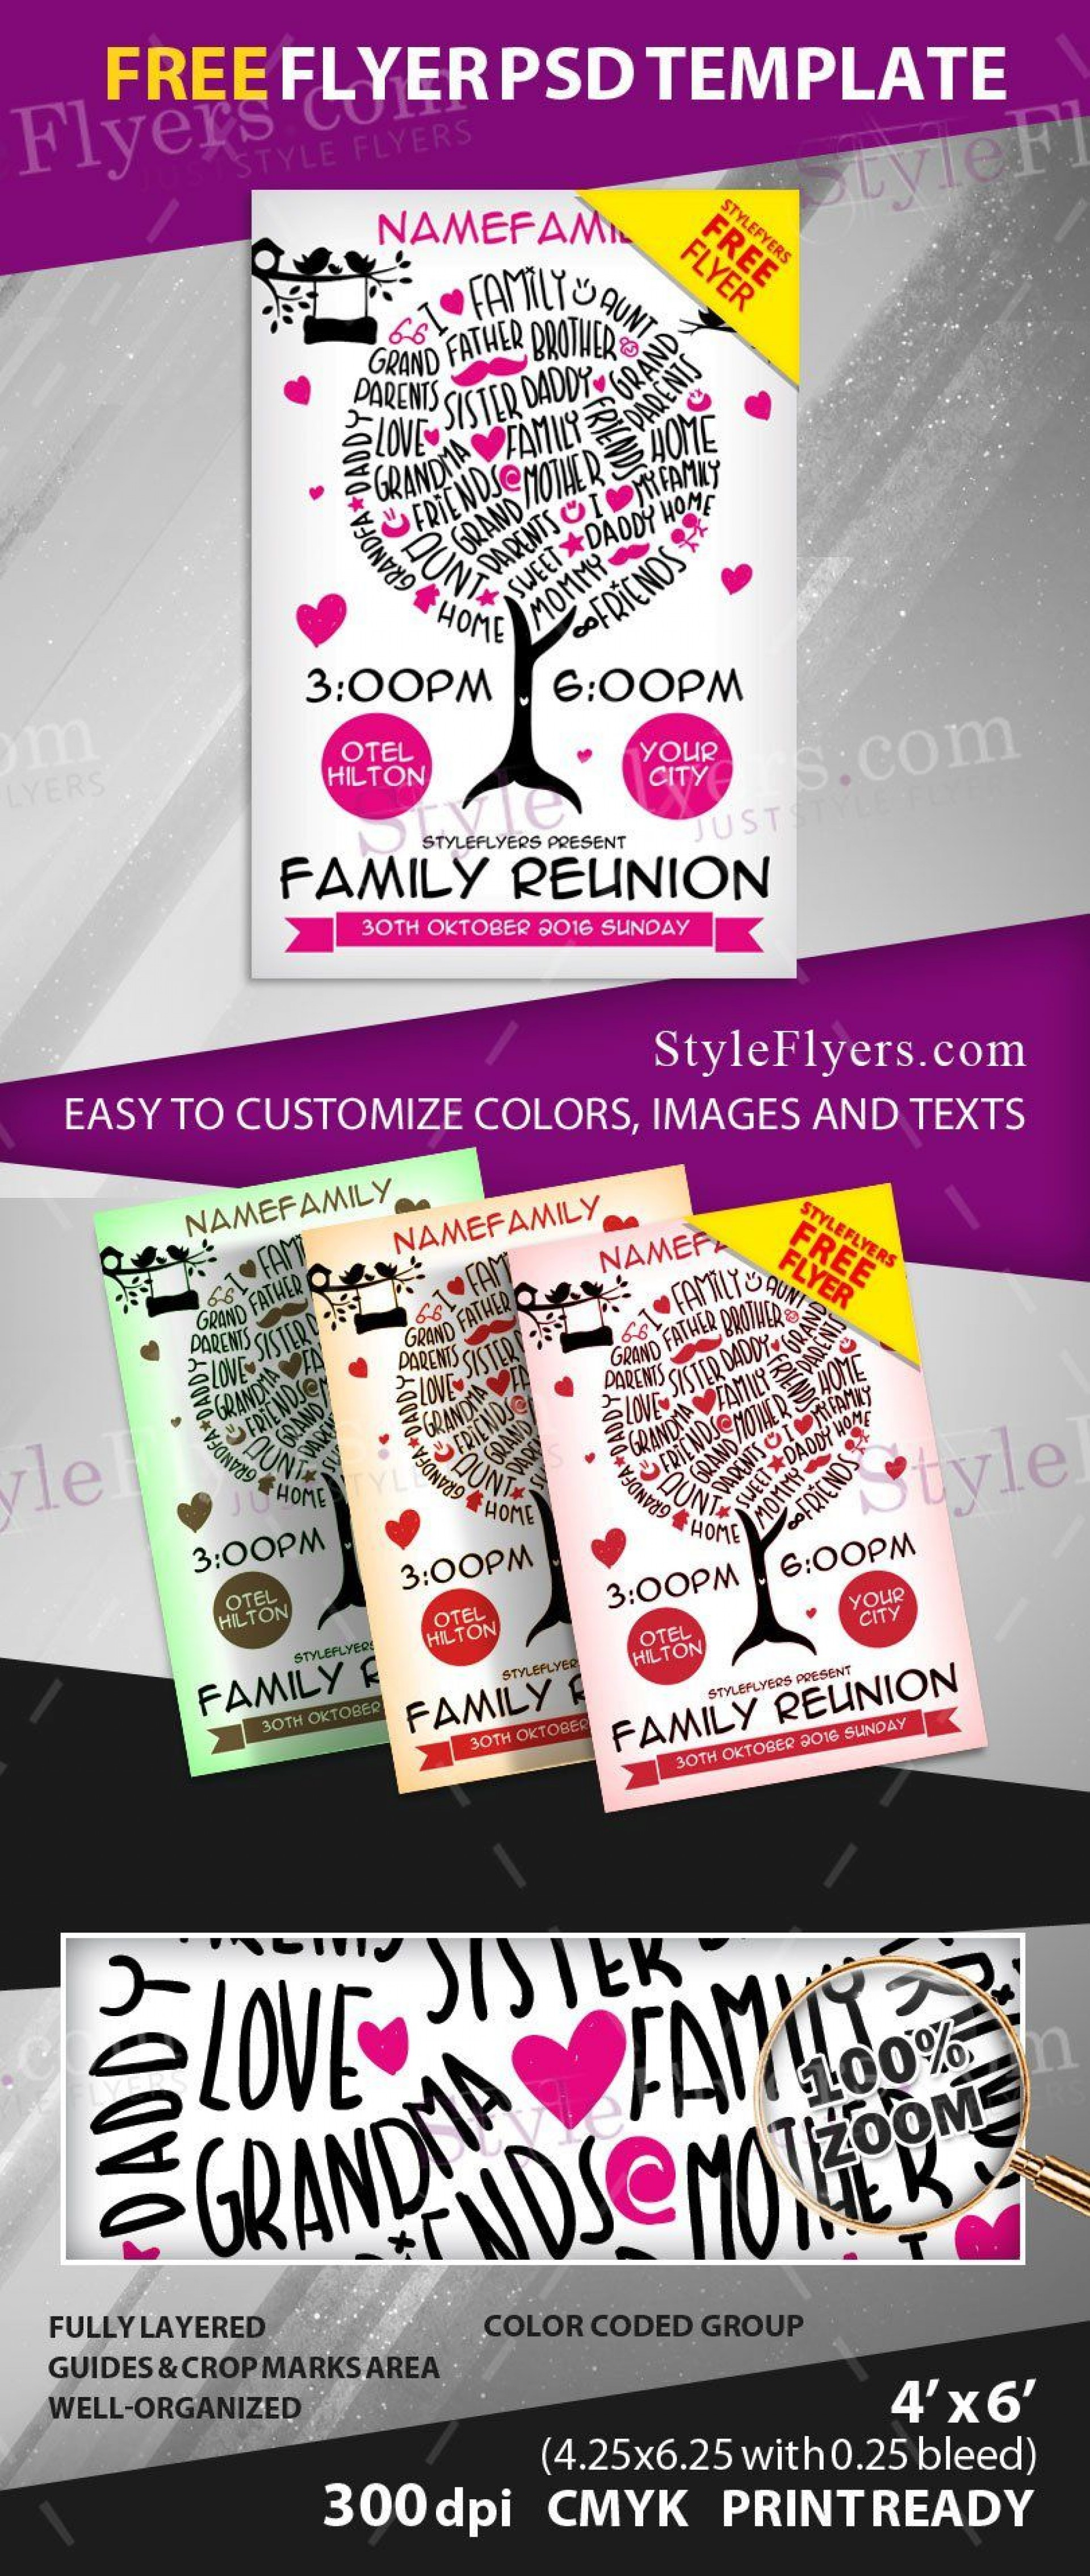 009 Unbelievable Family Reunion Flyer Template Inspiration  Templates Free For1920